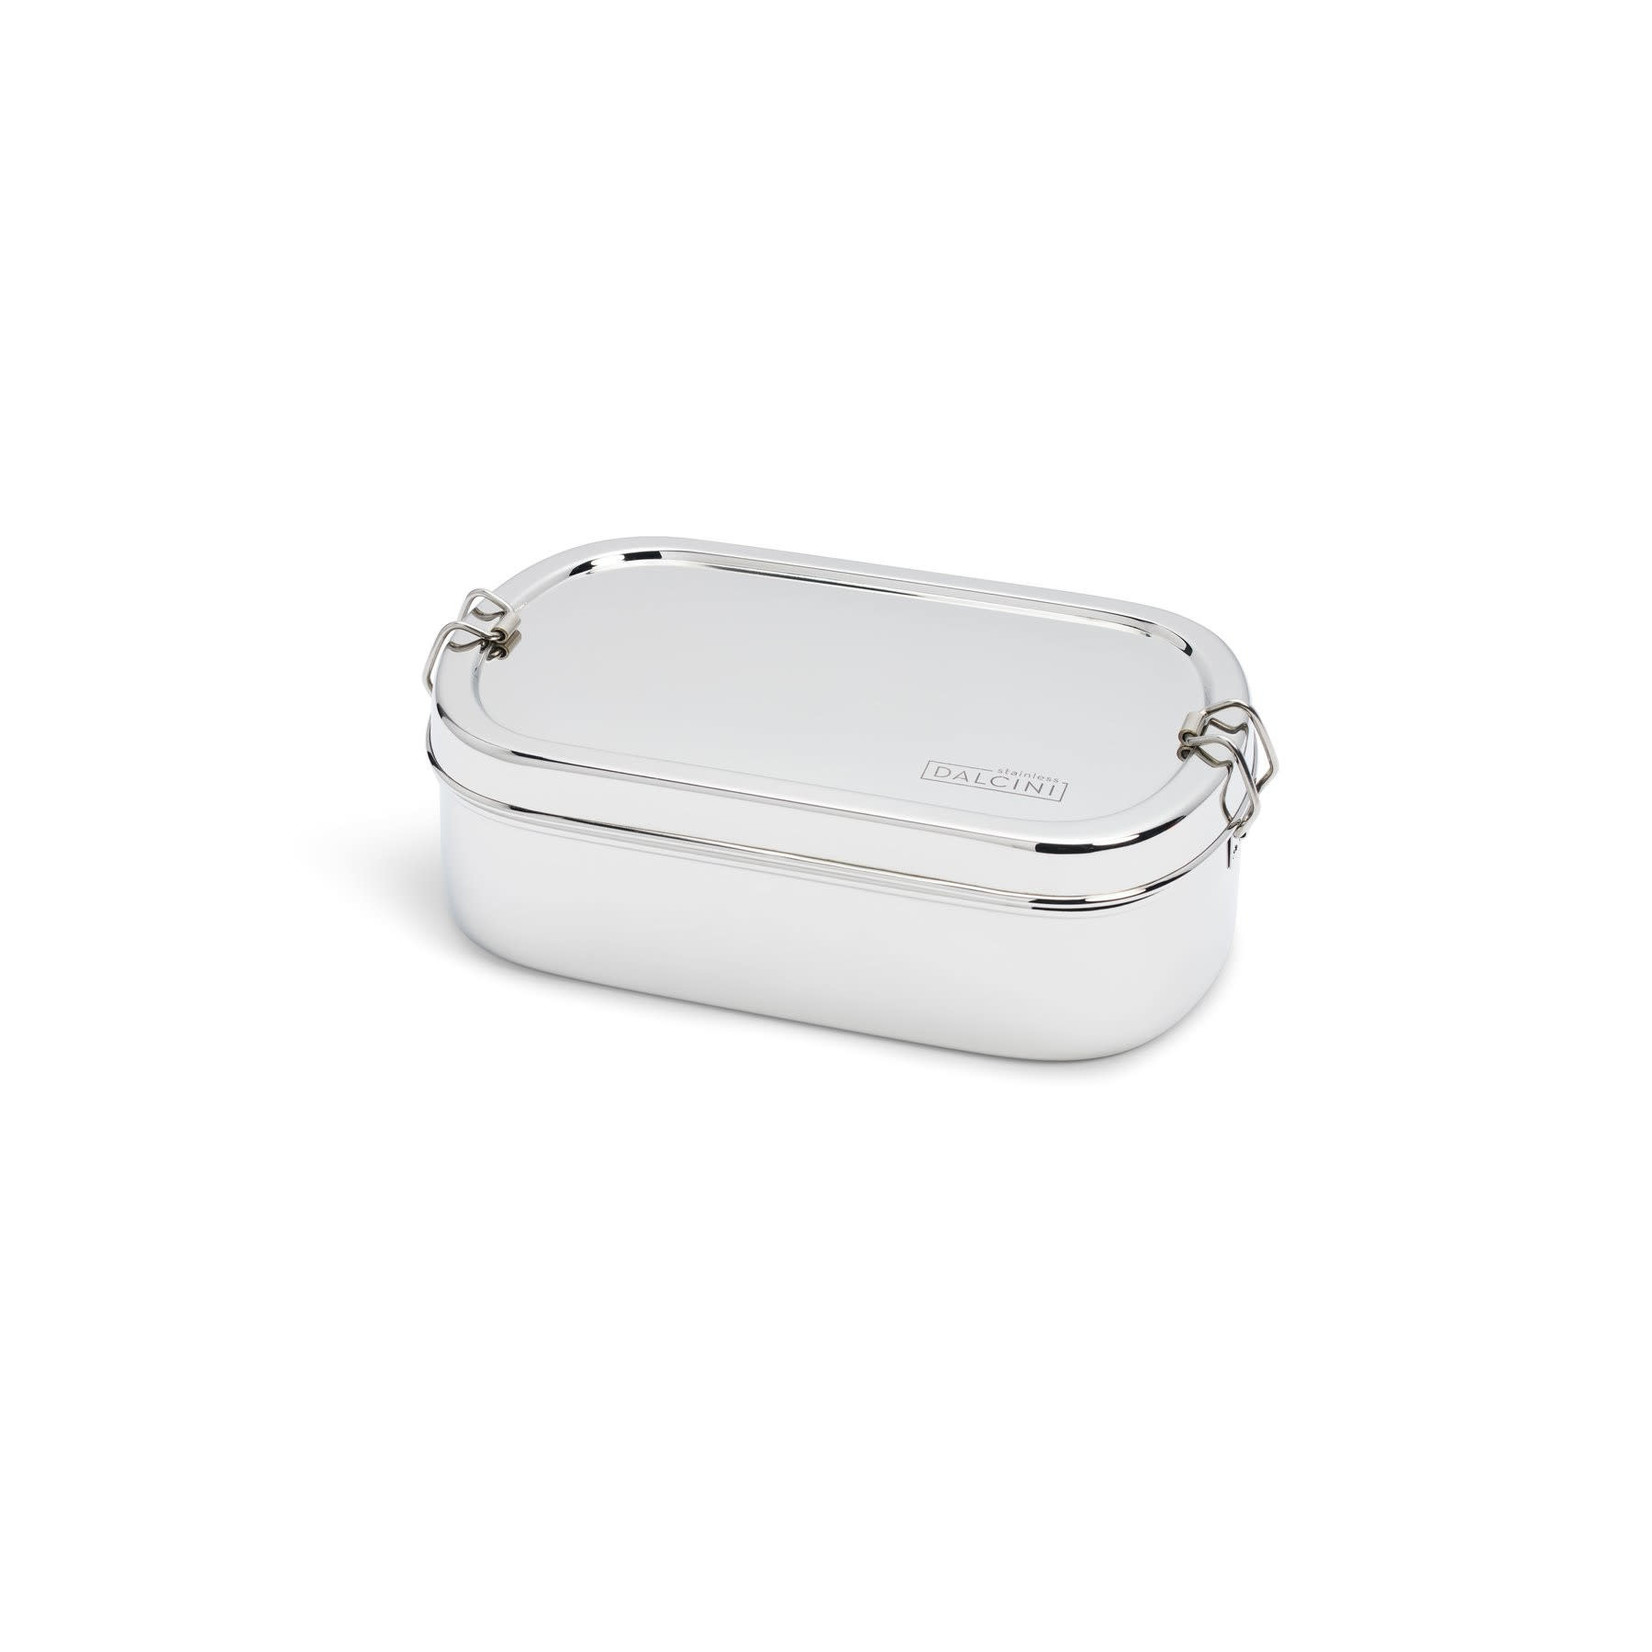 DALCINI STAINLESS LARGE OVAL WITH CLIPS